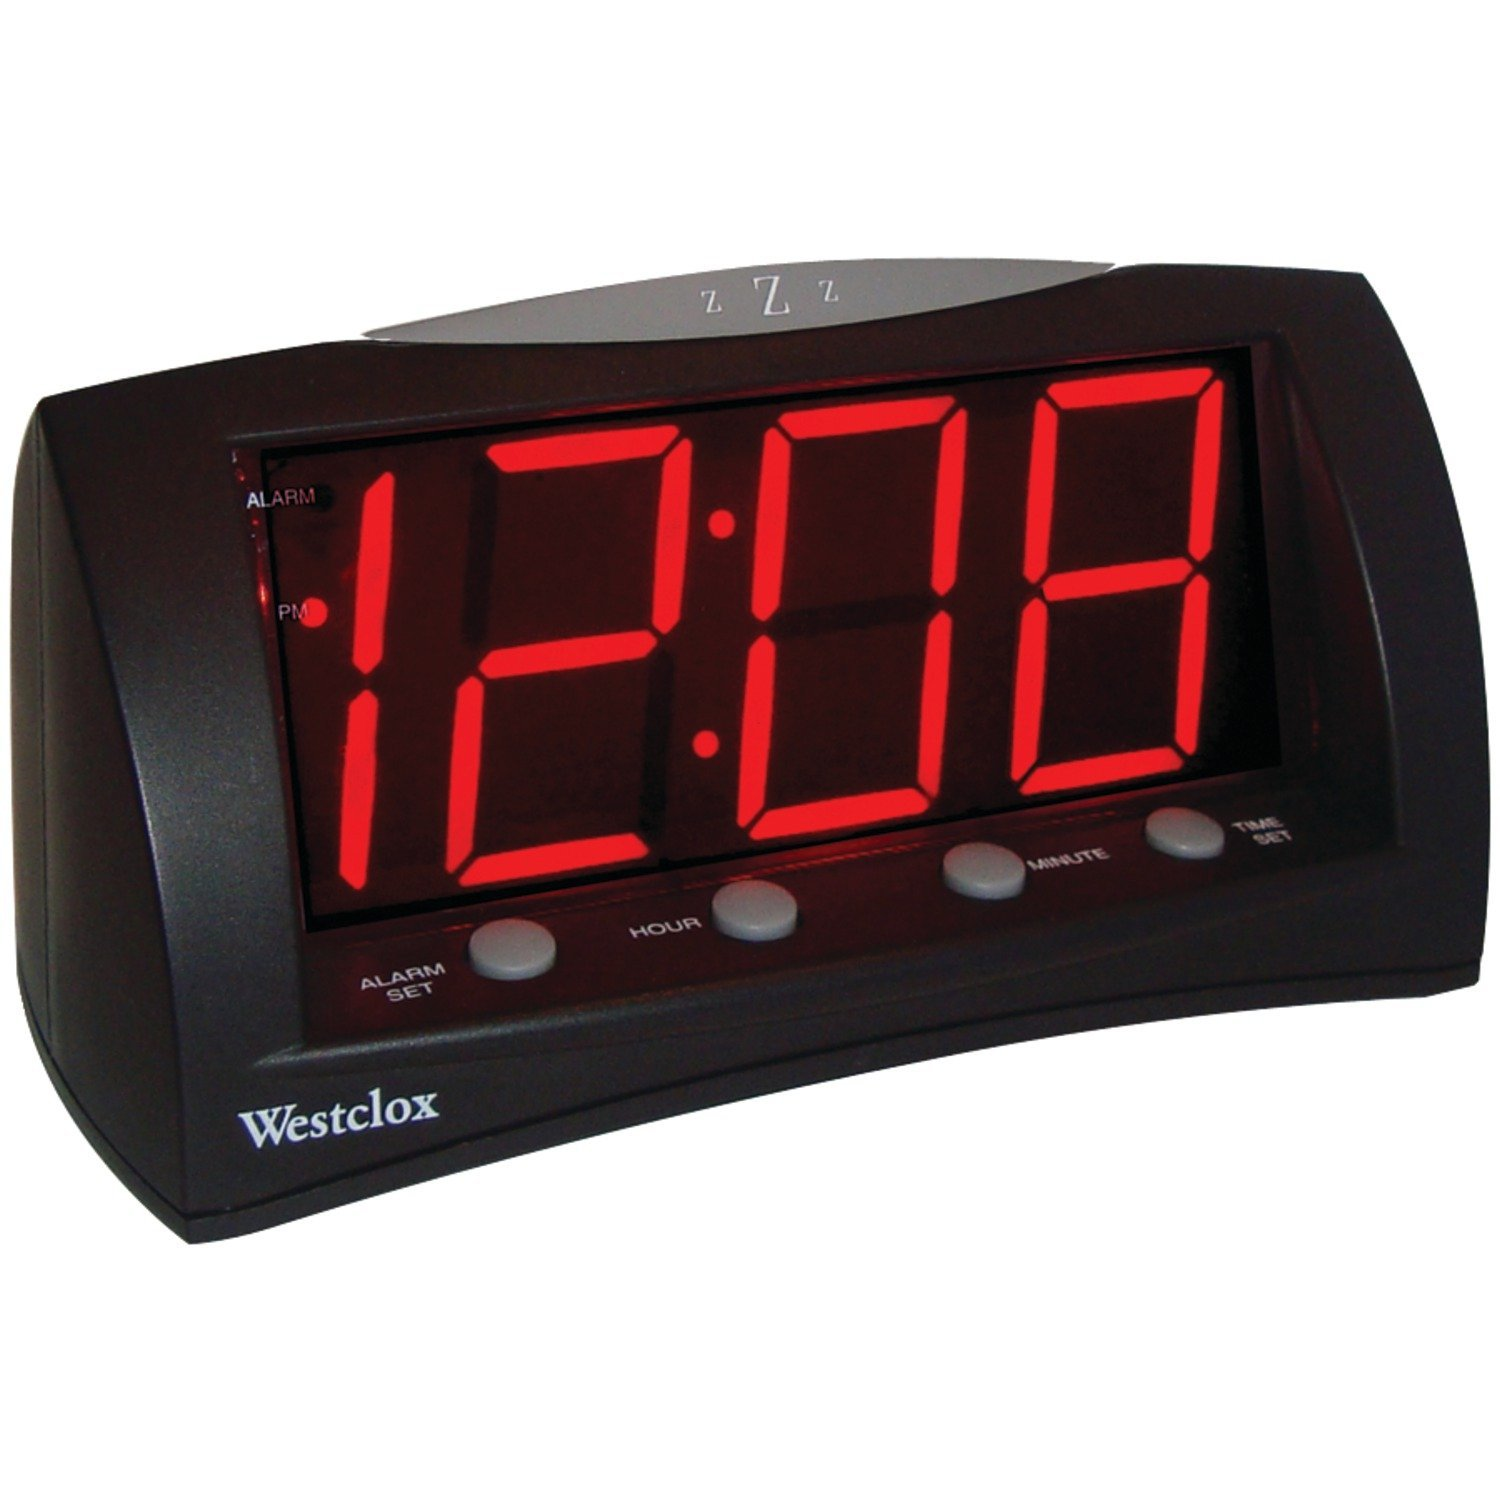 amazon com westclox 66705 large led alarm clock red display rh amazon com Color Color Changing Alarm Clock Atomic Plug in Alarm Clock Atomic